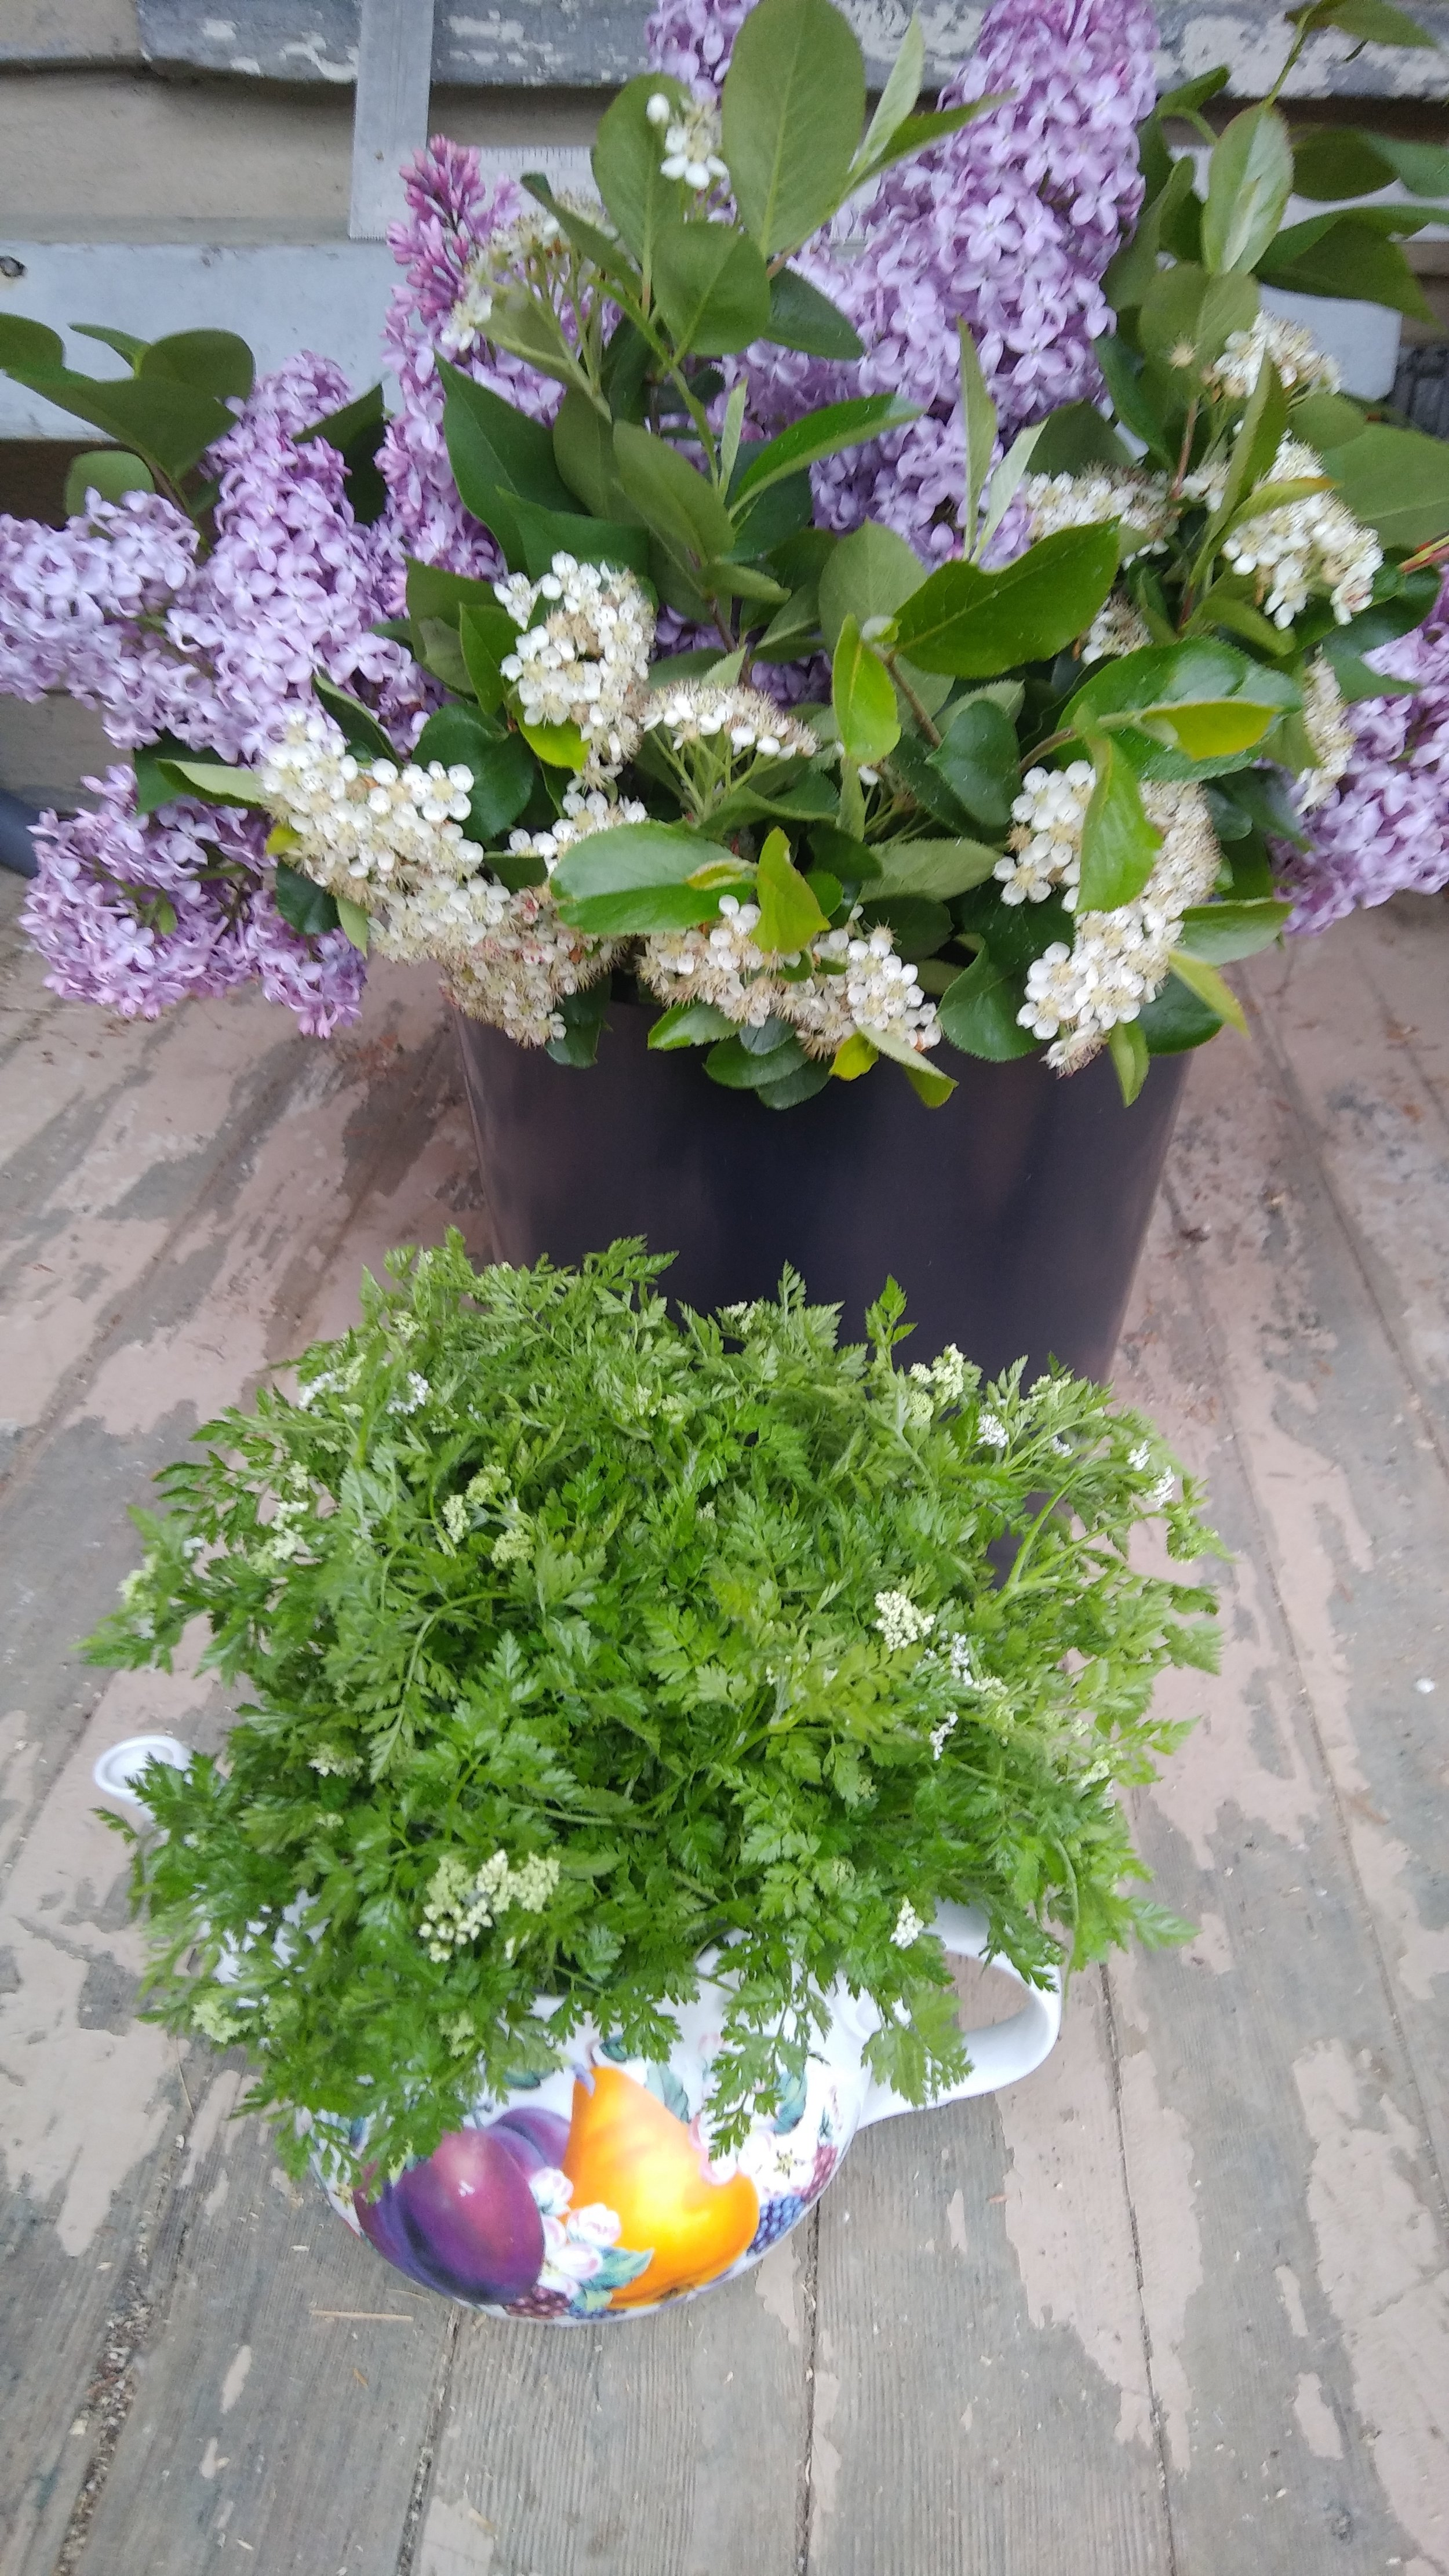 Lilac and chervil bouquets of spring mojo. Photo by Erin Schneider